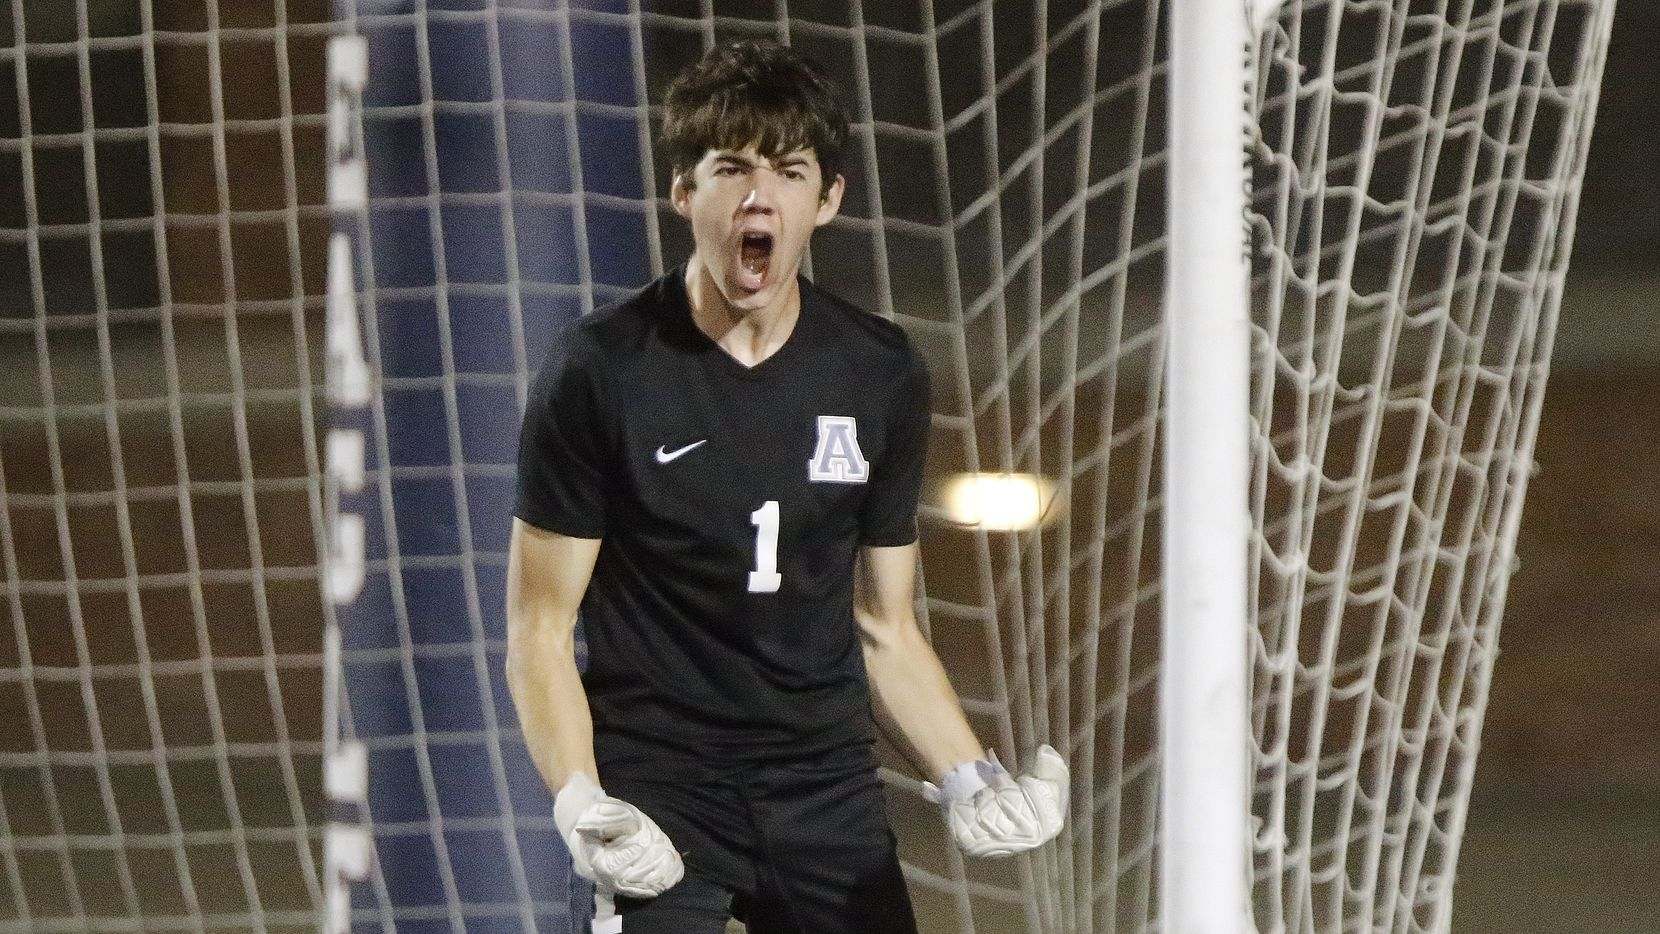 Allen goalkeeper Jackson Leavitt (1) celebrates a stop during the shootout which followed three overtimes as Allen High School hosted Keller High School in the Class 6A Region I semifinal soccer match at Eagle Stadium in Allen on Tuesday, April 6, 2021.